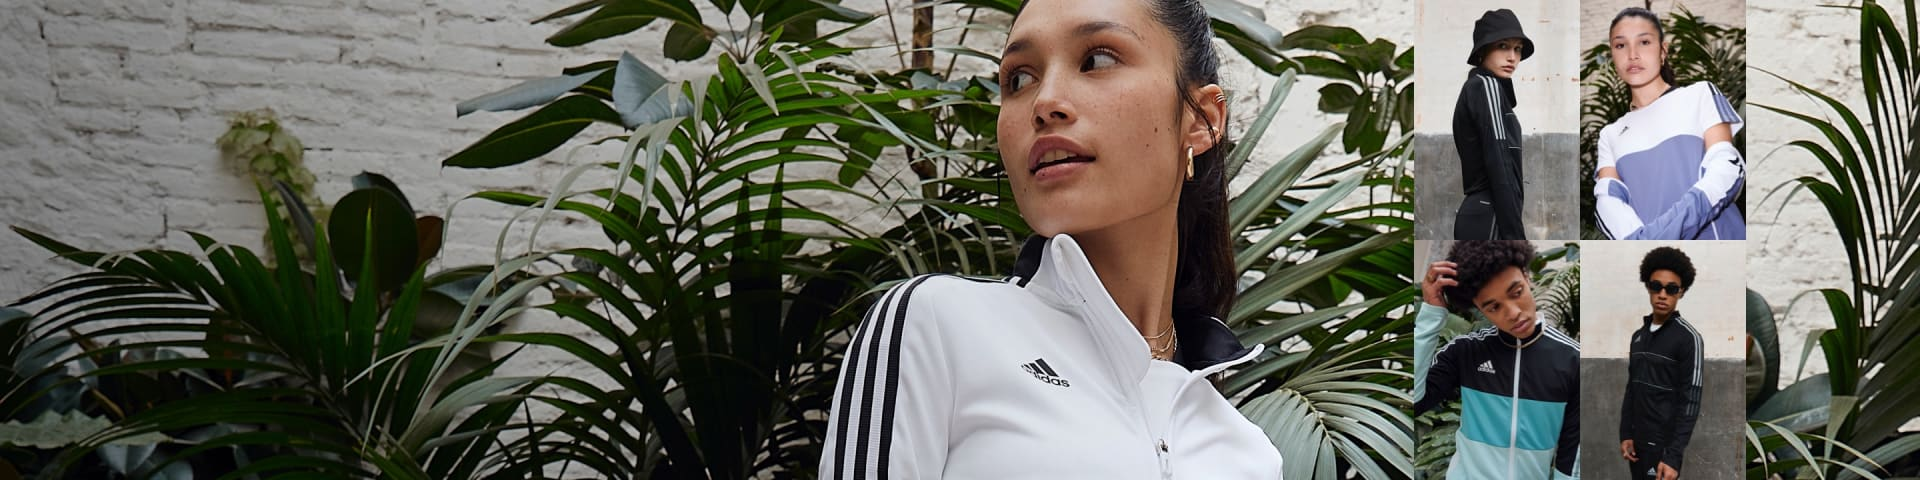 The key outfits from the TIRO 21 Summer Blocking and Reflective range from adidas. Spring/Summer 21.